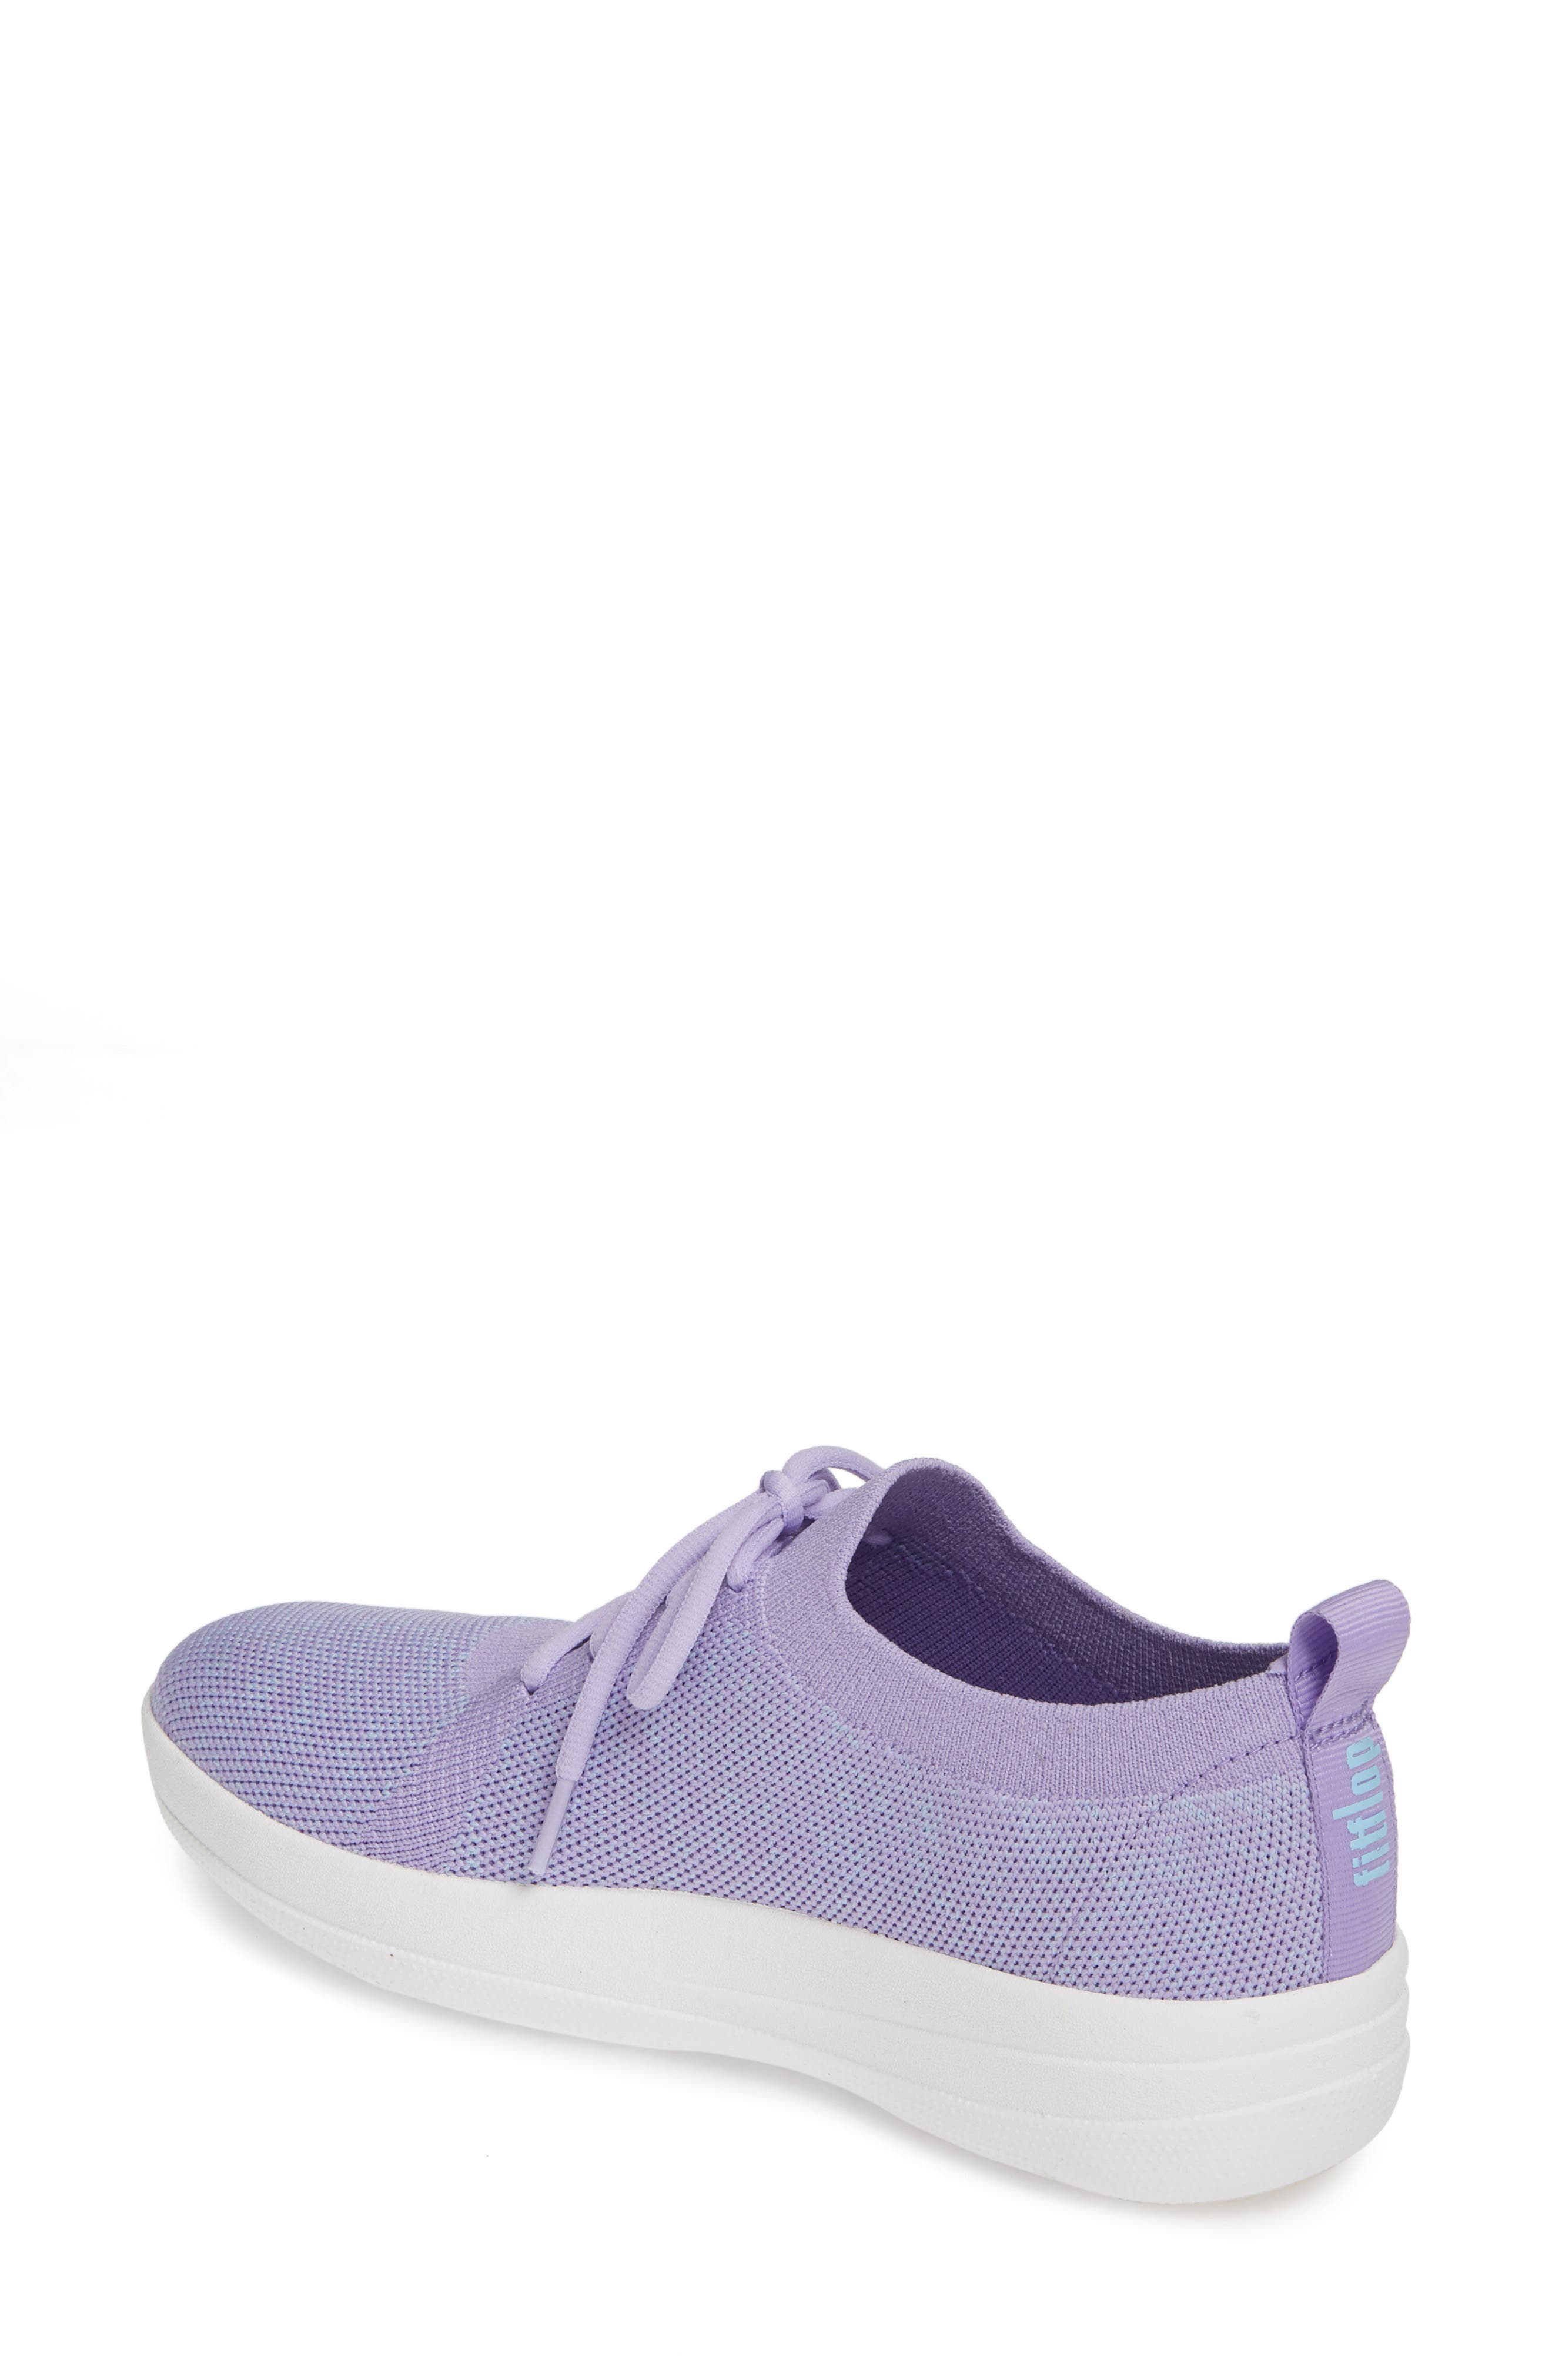 FITFLOP, F-Sporty Uberknit<sup>™</sup> Sneaker, Alternate thumbnail 2, color, 535